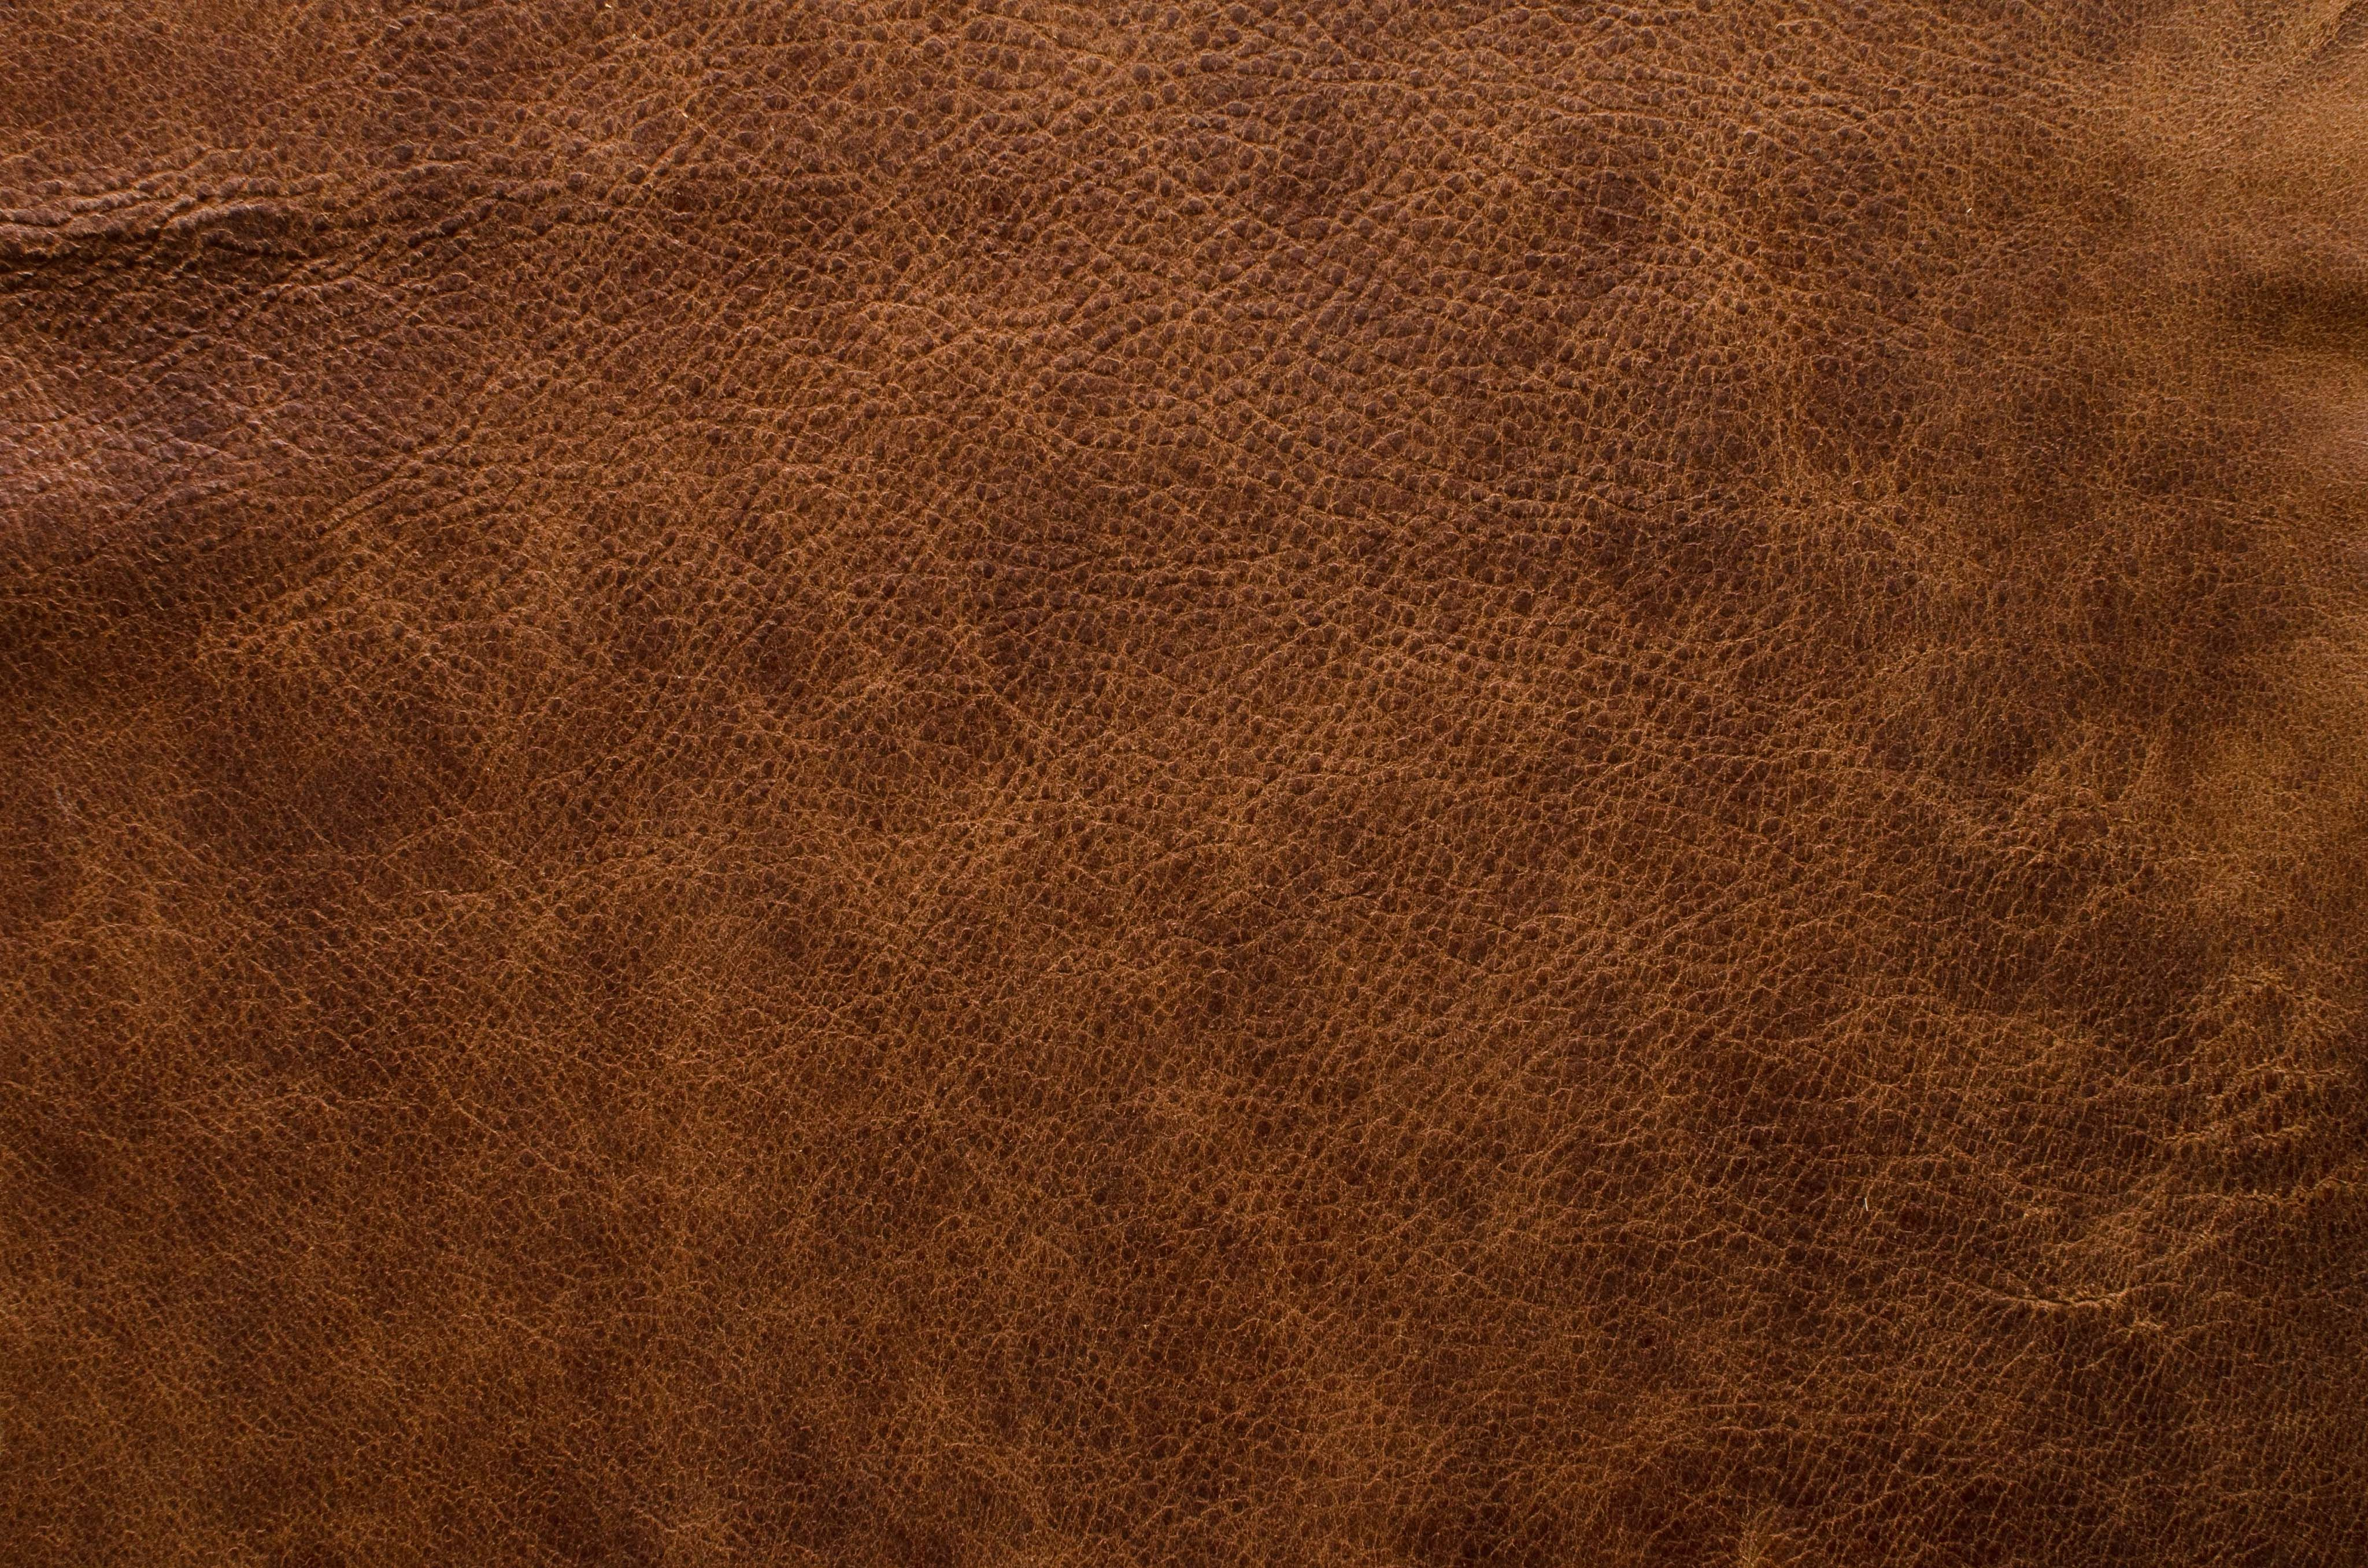 Brown Leather #21v 4096x2713 px 1.60 MB AbstractTexture. 1920x1080 ...